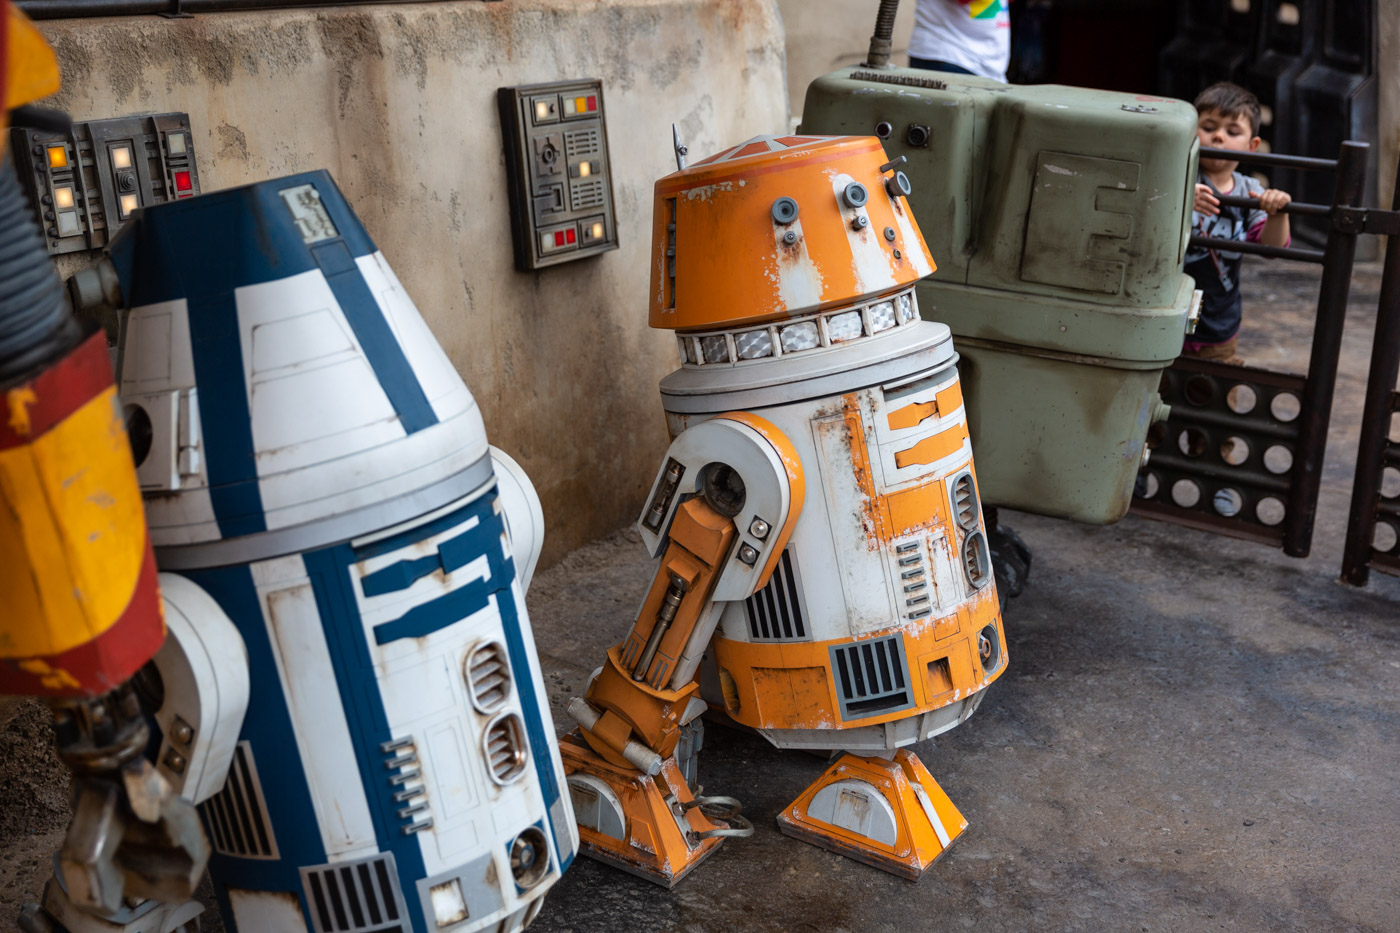 Details inside Disneyland's Galaxy's Edge